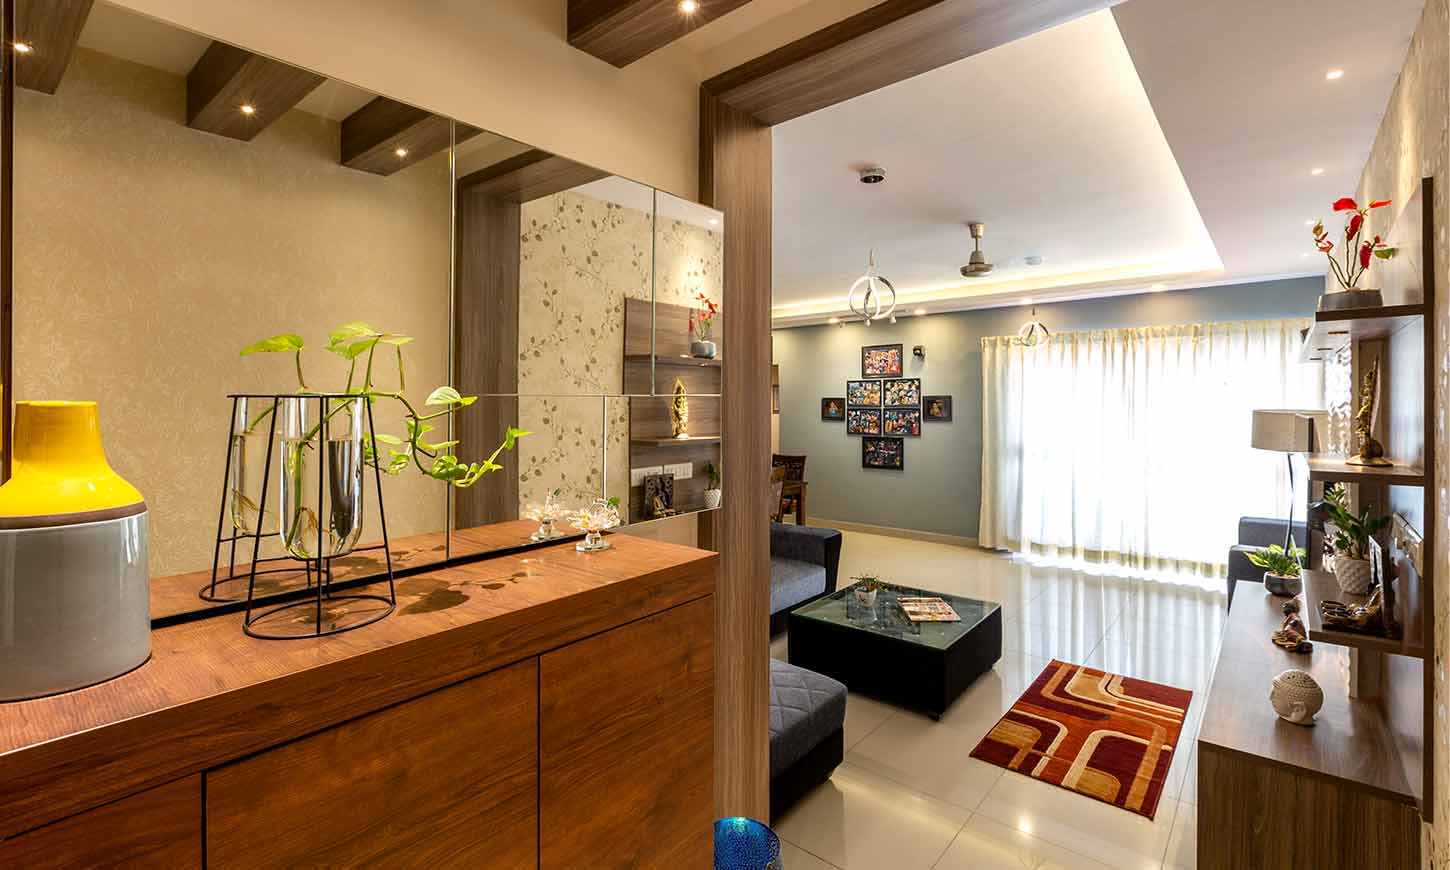 Living room with open kitchen with good interiors in bangalore